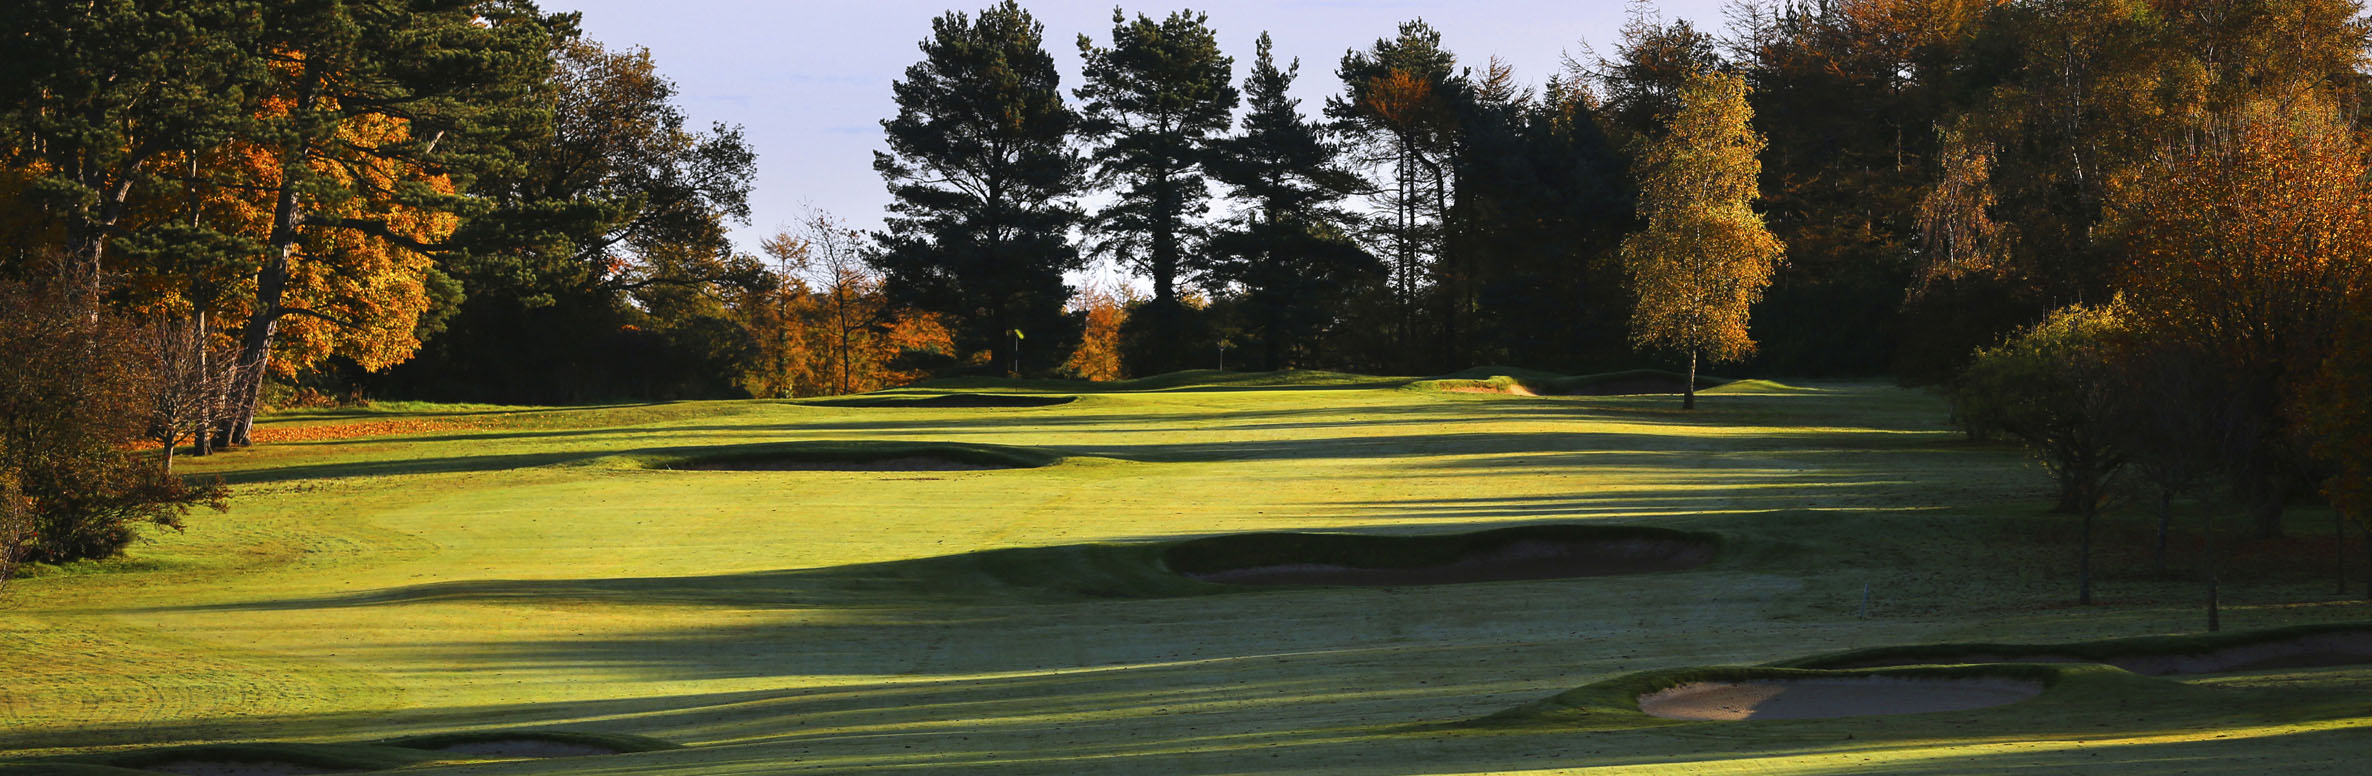 Golf Course Image - Royal Belfast Golf Club No. 16